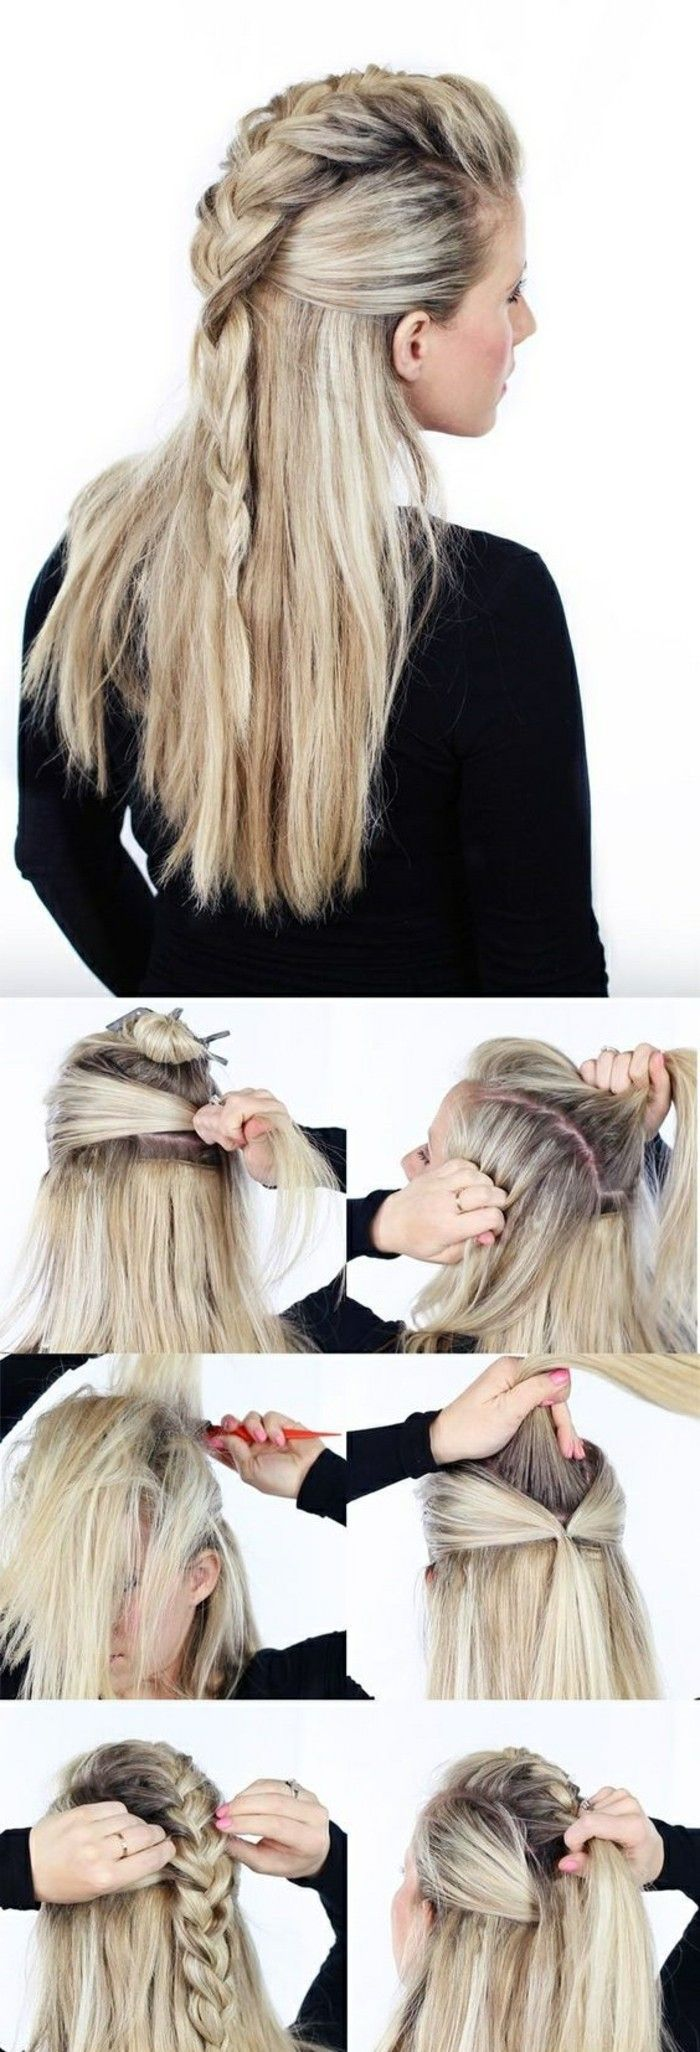 fast-hairstyles-medium-length-blonde-smooth-hair-plait-fudge-hair hairstyle-selb